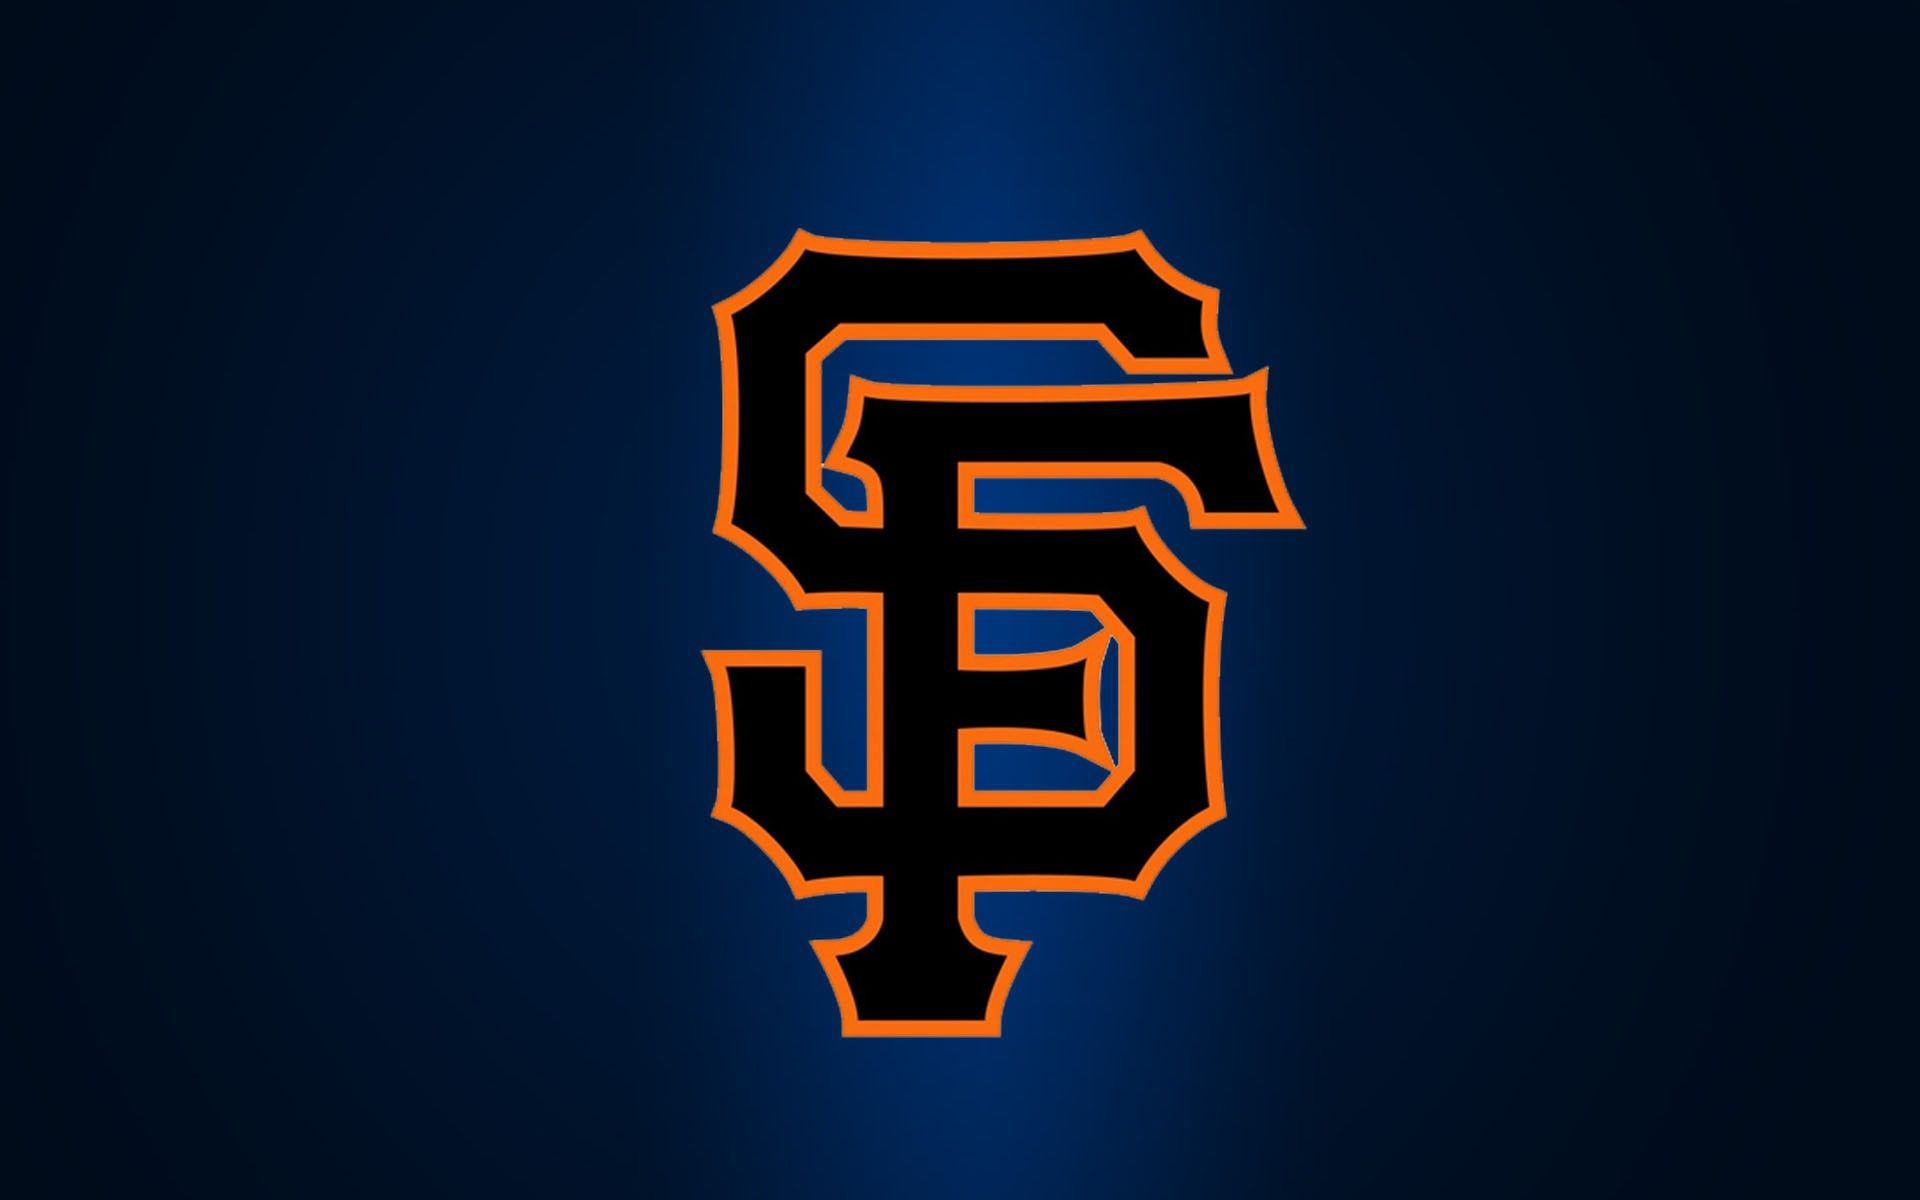 San-Francisco-Giants-Logo-HD-Wallpapers